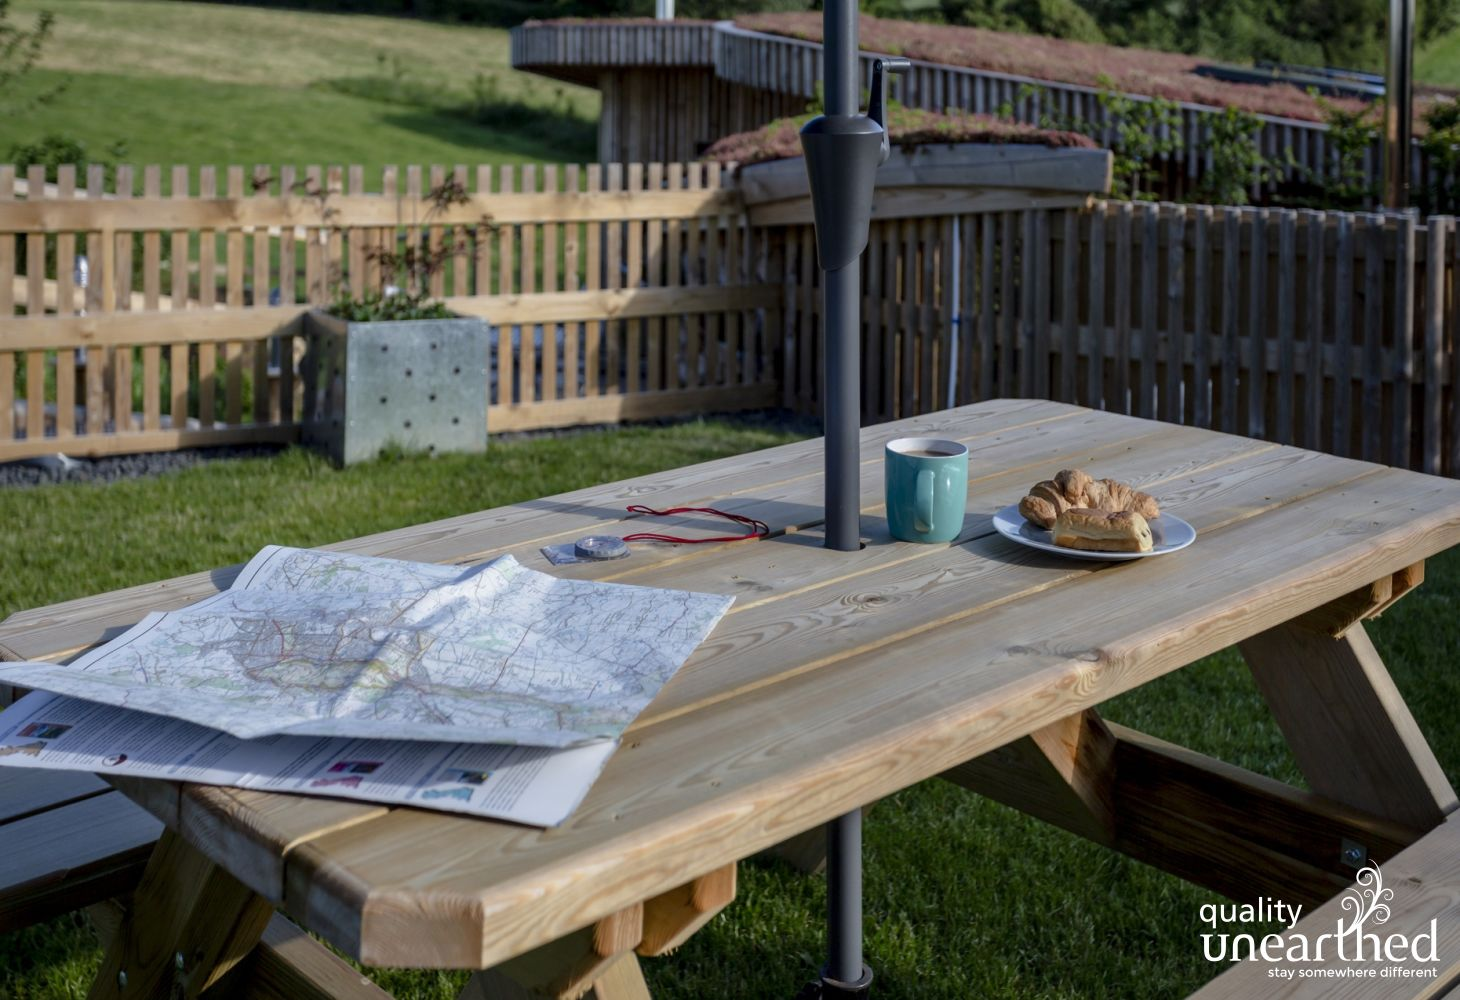 A classic picnic bench with a parasol on the lawn above the family lodge and a map to plan walking in the Malvern Hills